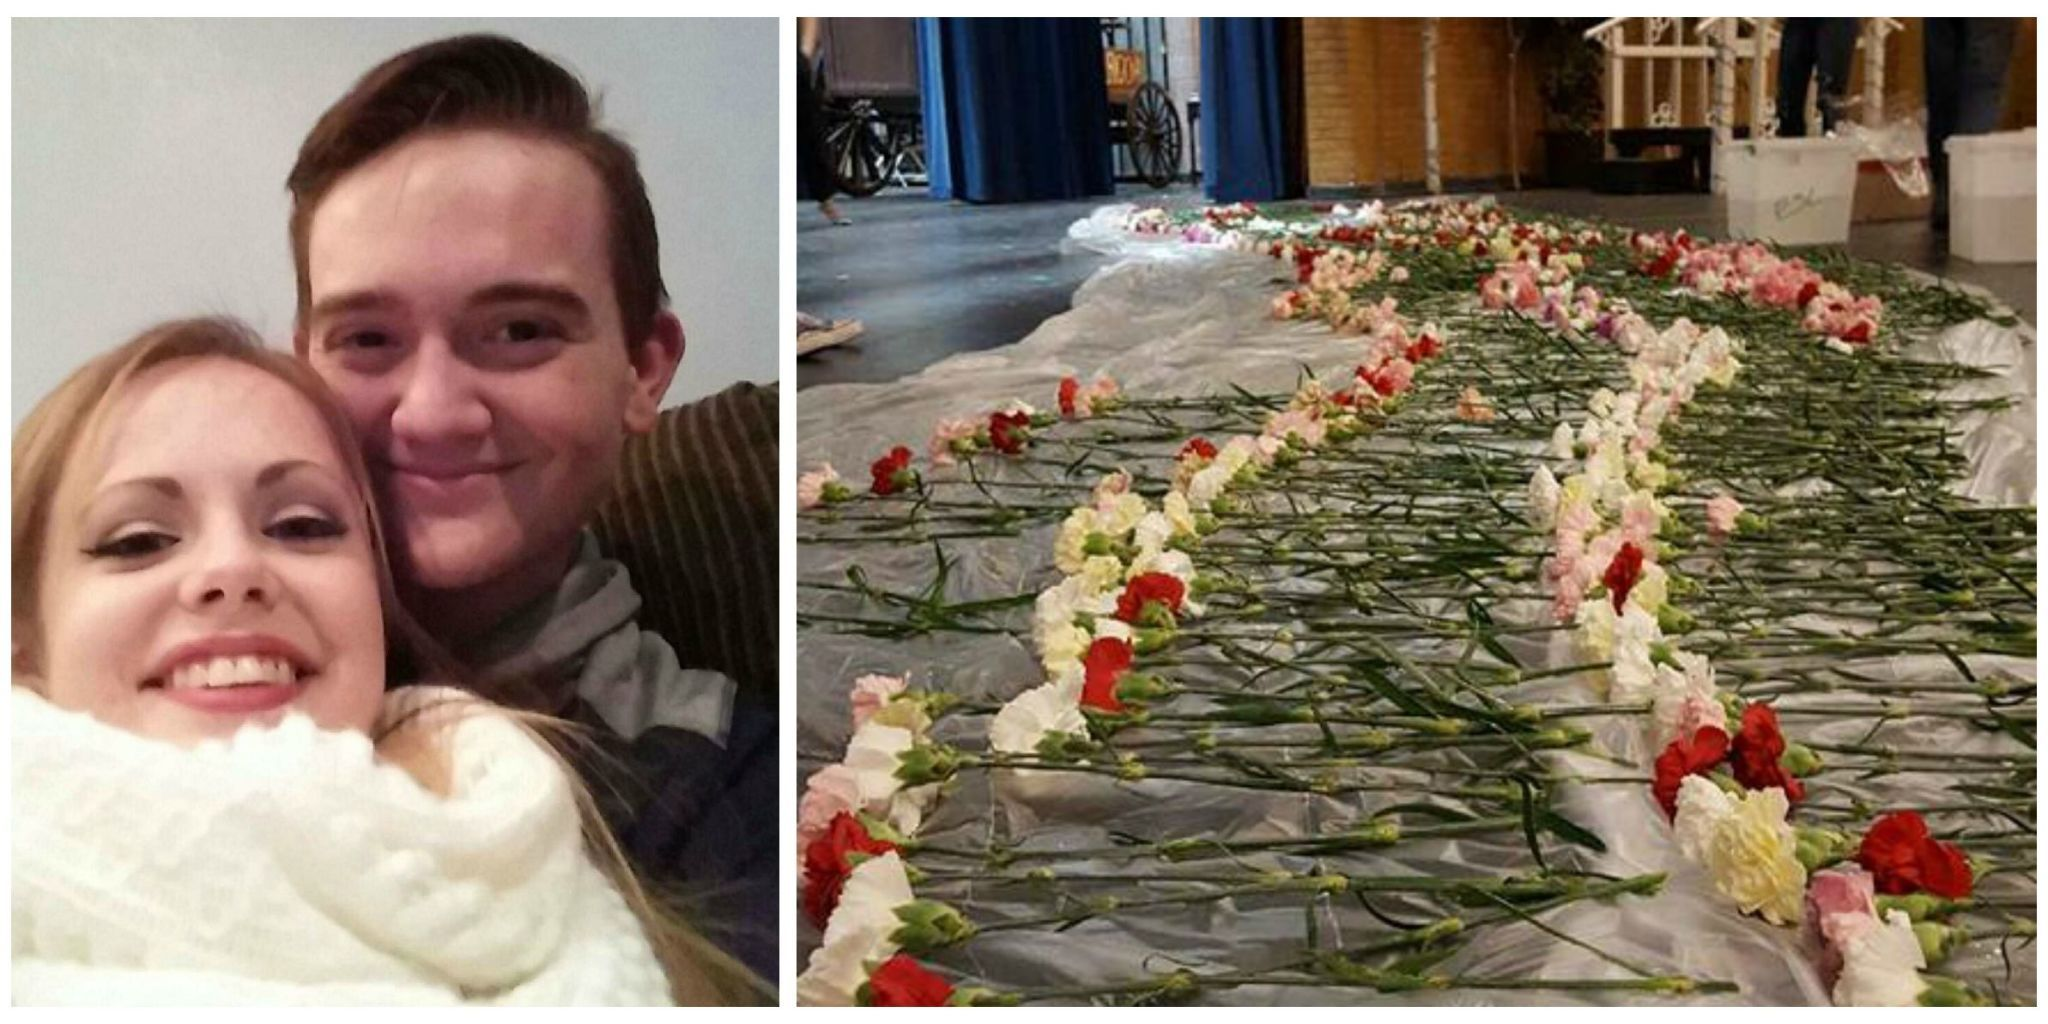 This High School Senior Surprised Every Girl at His School With Flowers